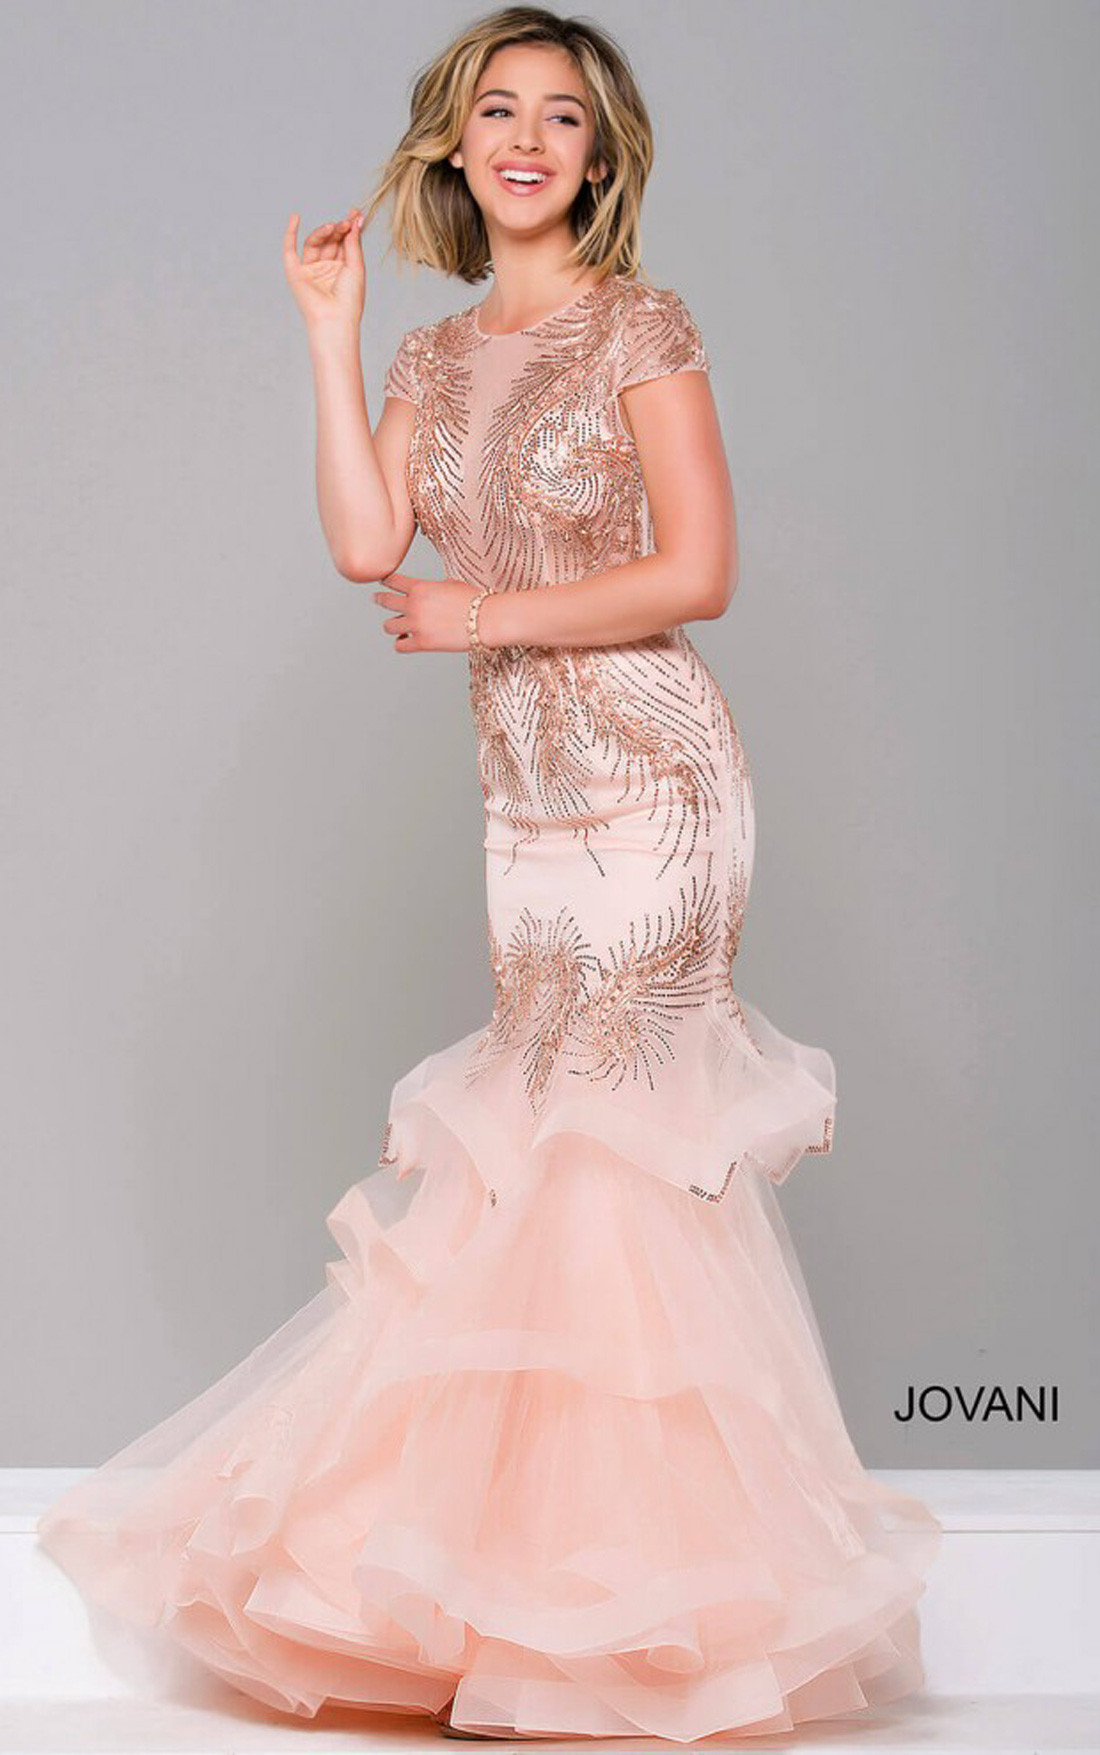 Jovani Dresses | Womens Black Embellished Mermaid Dress | Womens ...